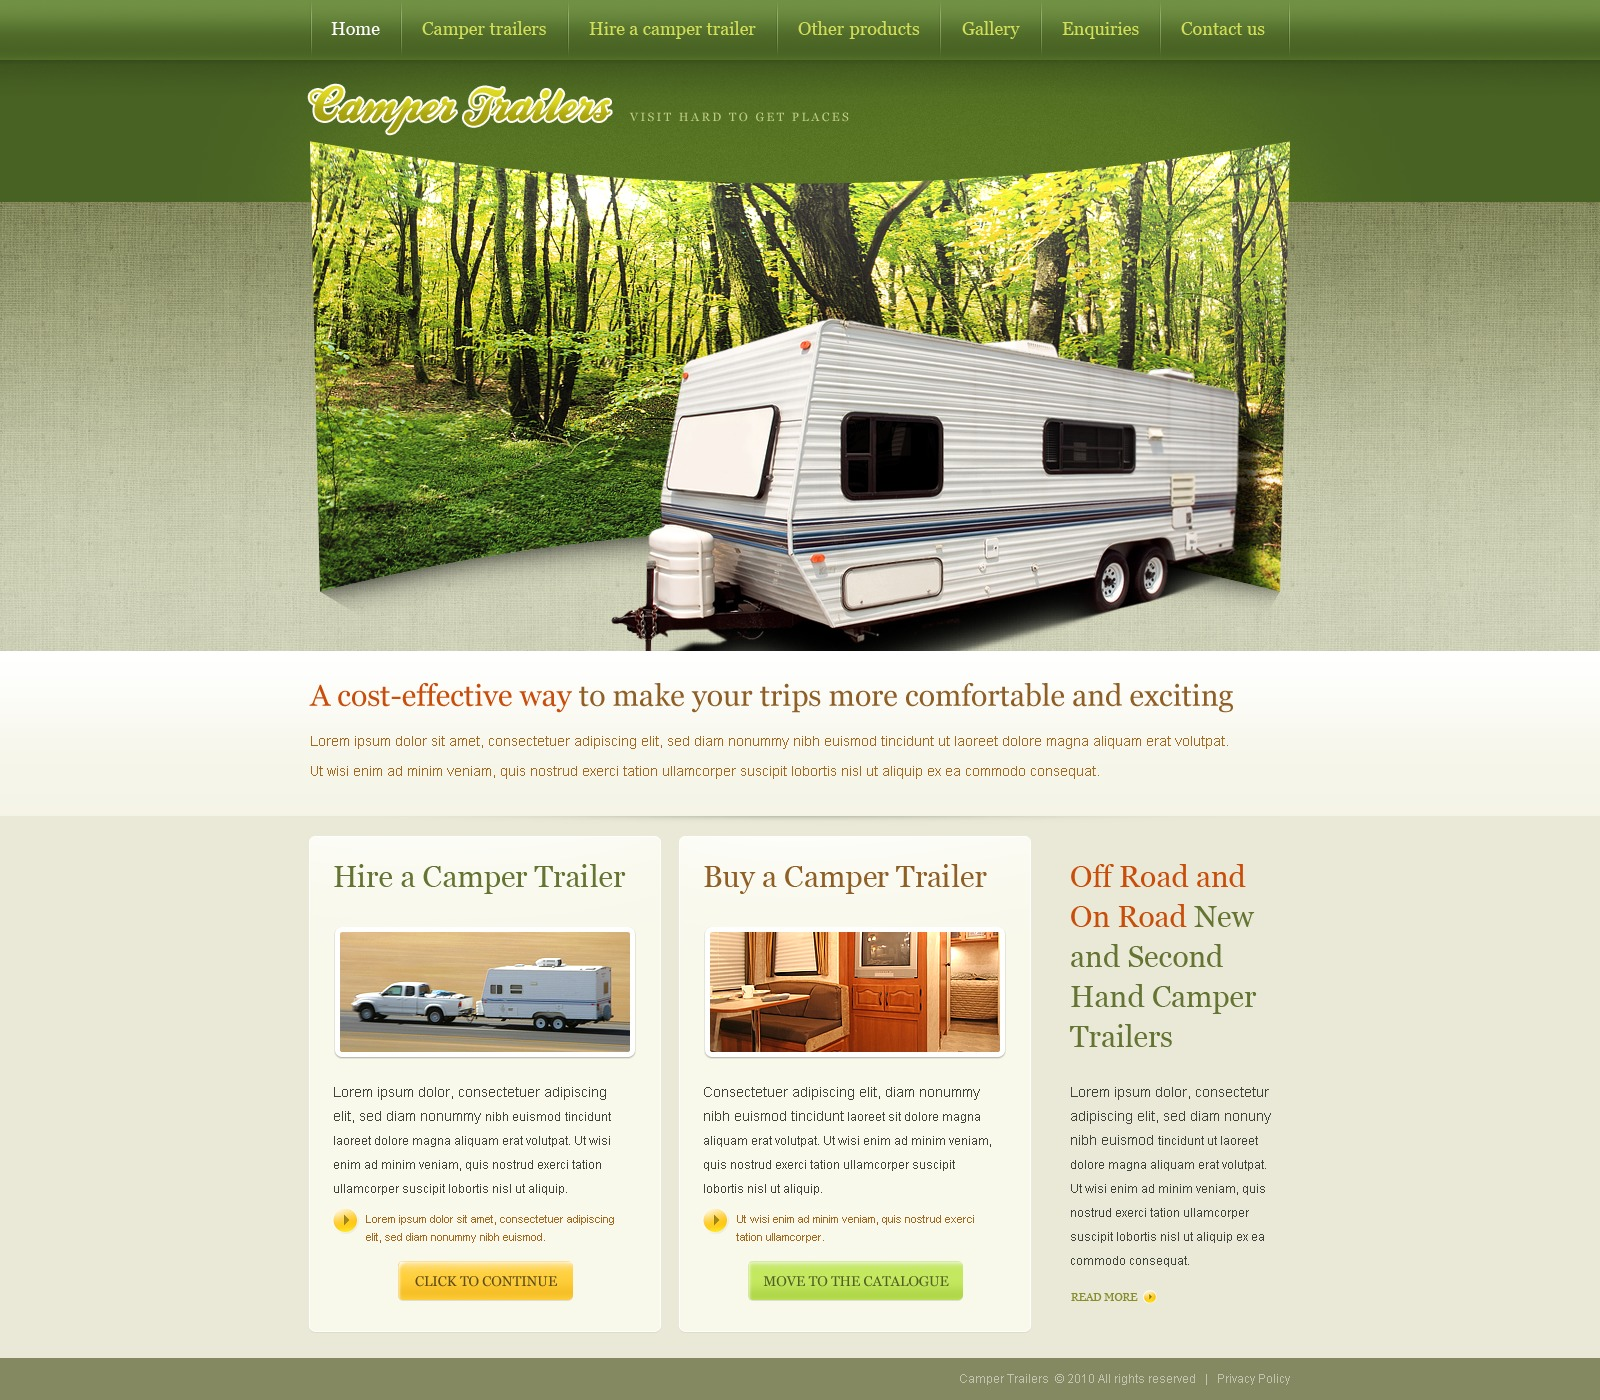 The Camper Trailers PSD Design 54083, one of the best PSD templates of its kind (travel, flash 8, wide), also known as camper trailers PSD template, hire PSD template, buy PSD template, travel PSD template, trip PSD template, road PSD template, comfort PSD template, trailer and related with camper trailers, hire, buy, travel, trip, road, comfort, trailer, etc.